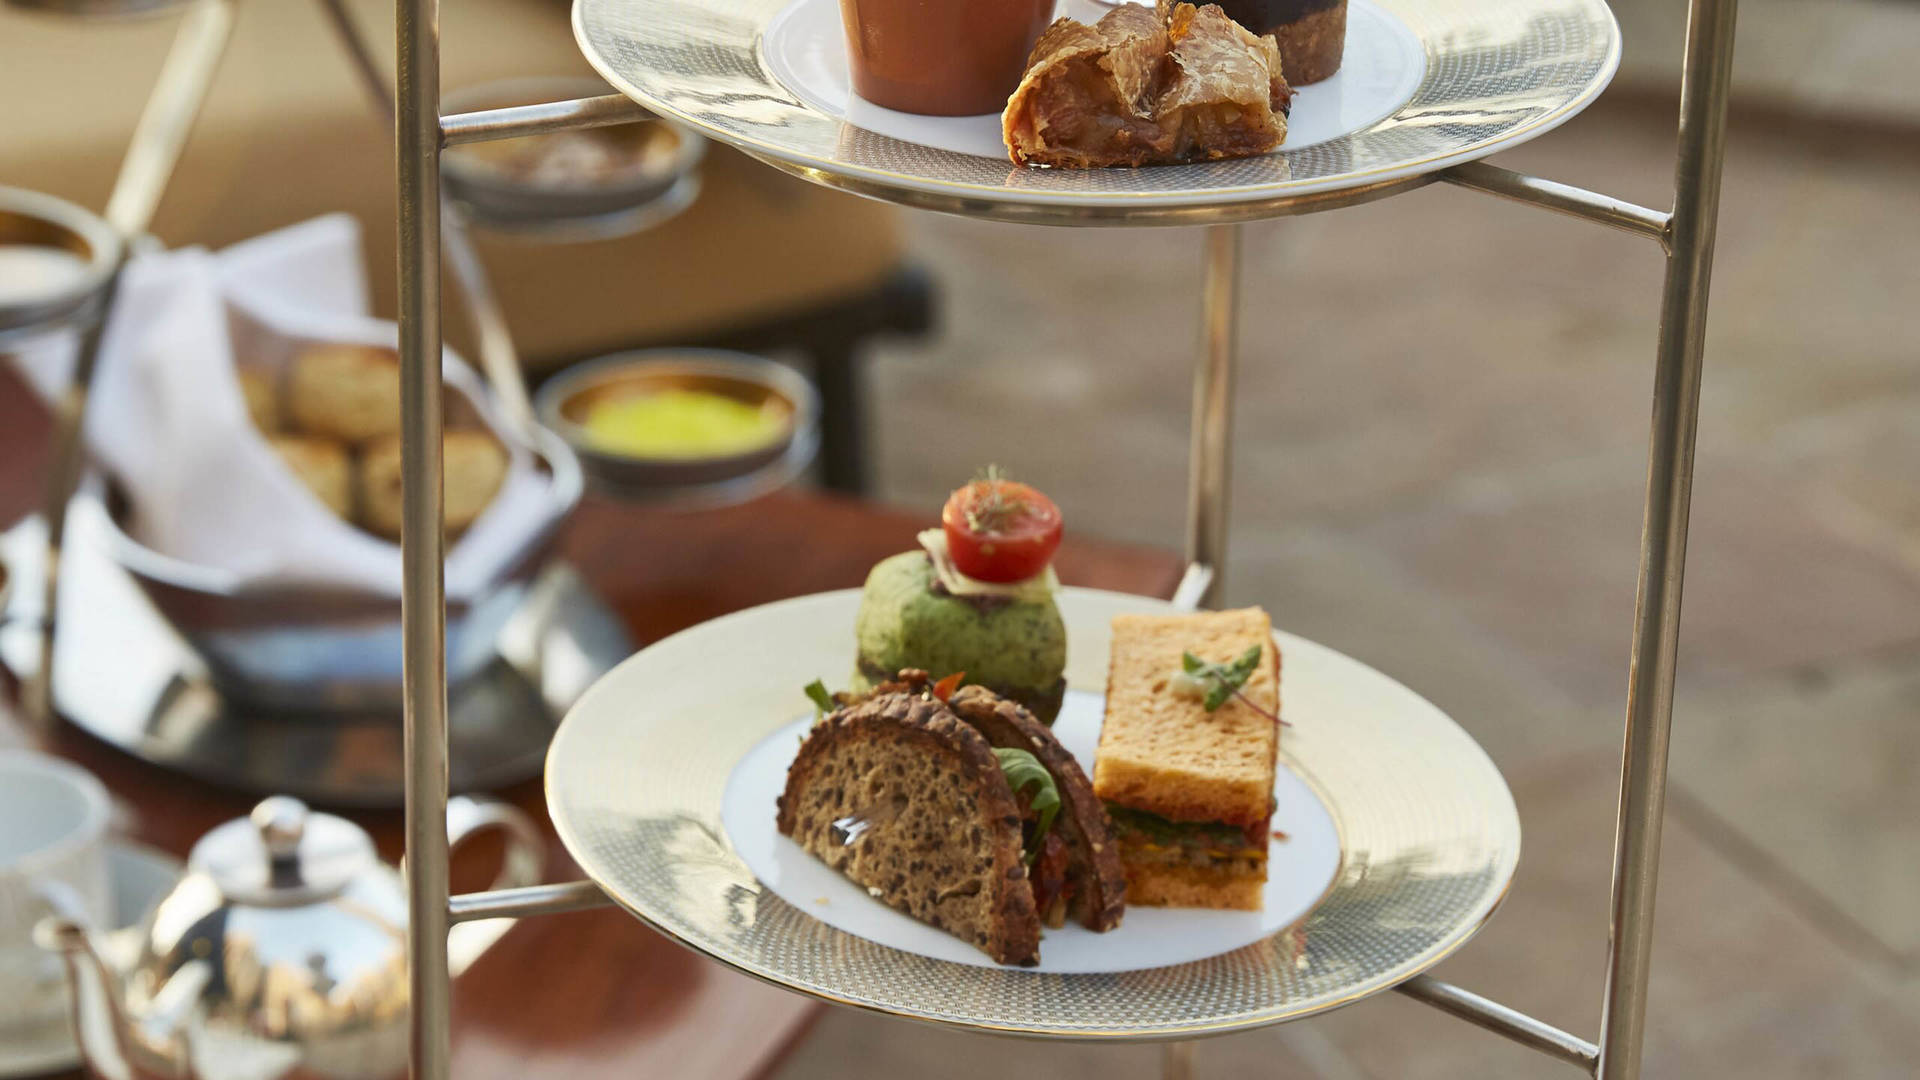 vegan afternoon tea 2019 food trends